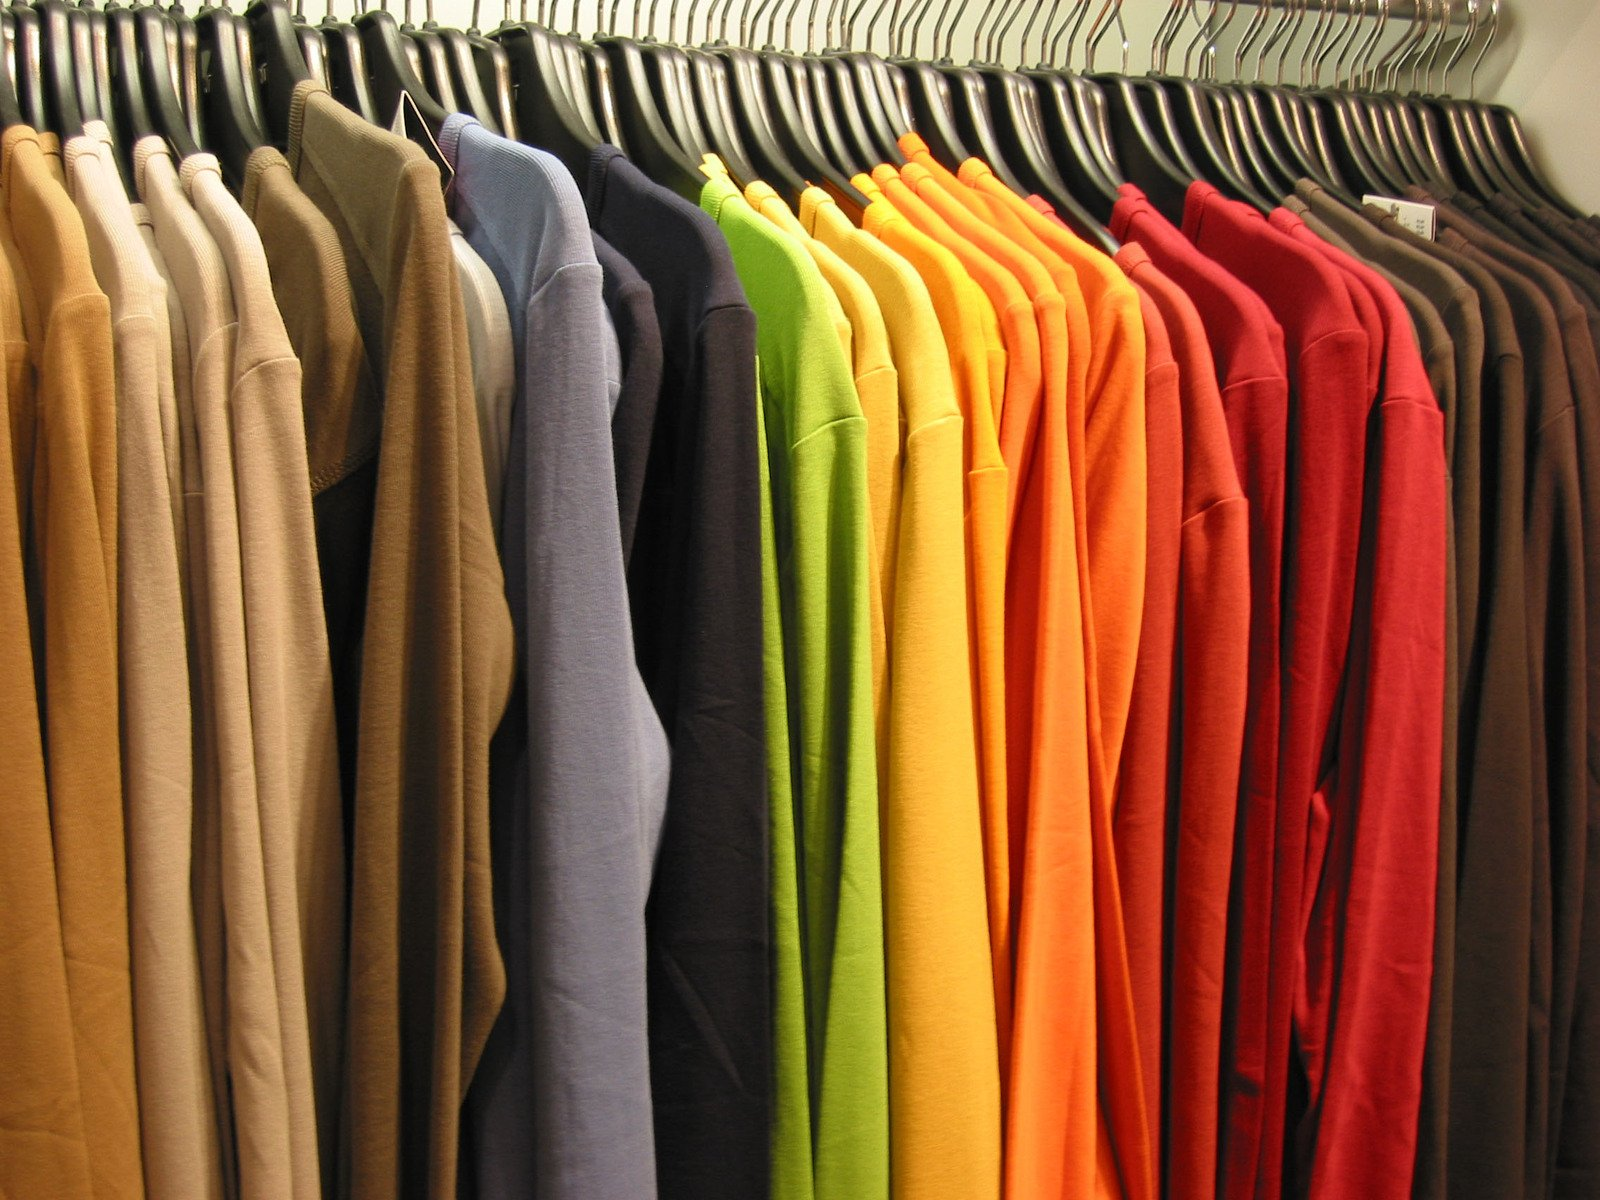 Fashion Bulk | Wholesale Name Brand Clothing Liquidations